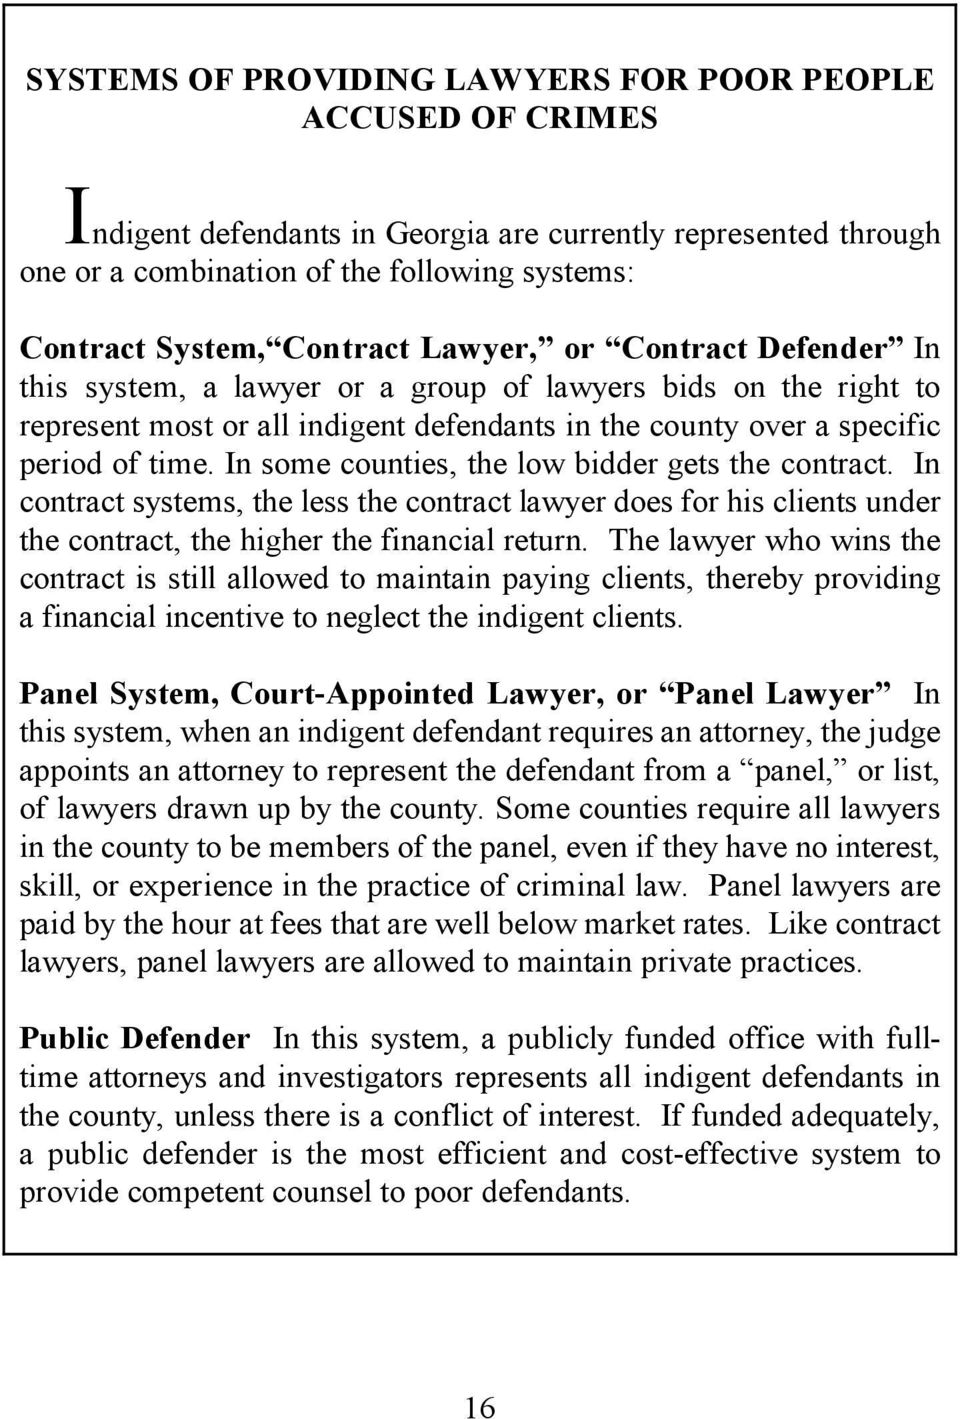 In some counties, the low bidder gets the contract. In contract systems, the less the contract lawyer does for his clients under the contract, the higher the financial return.